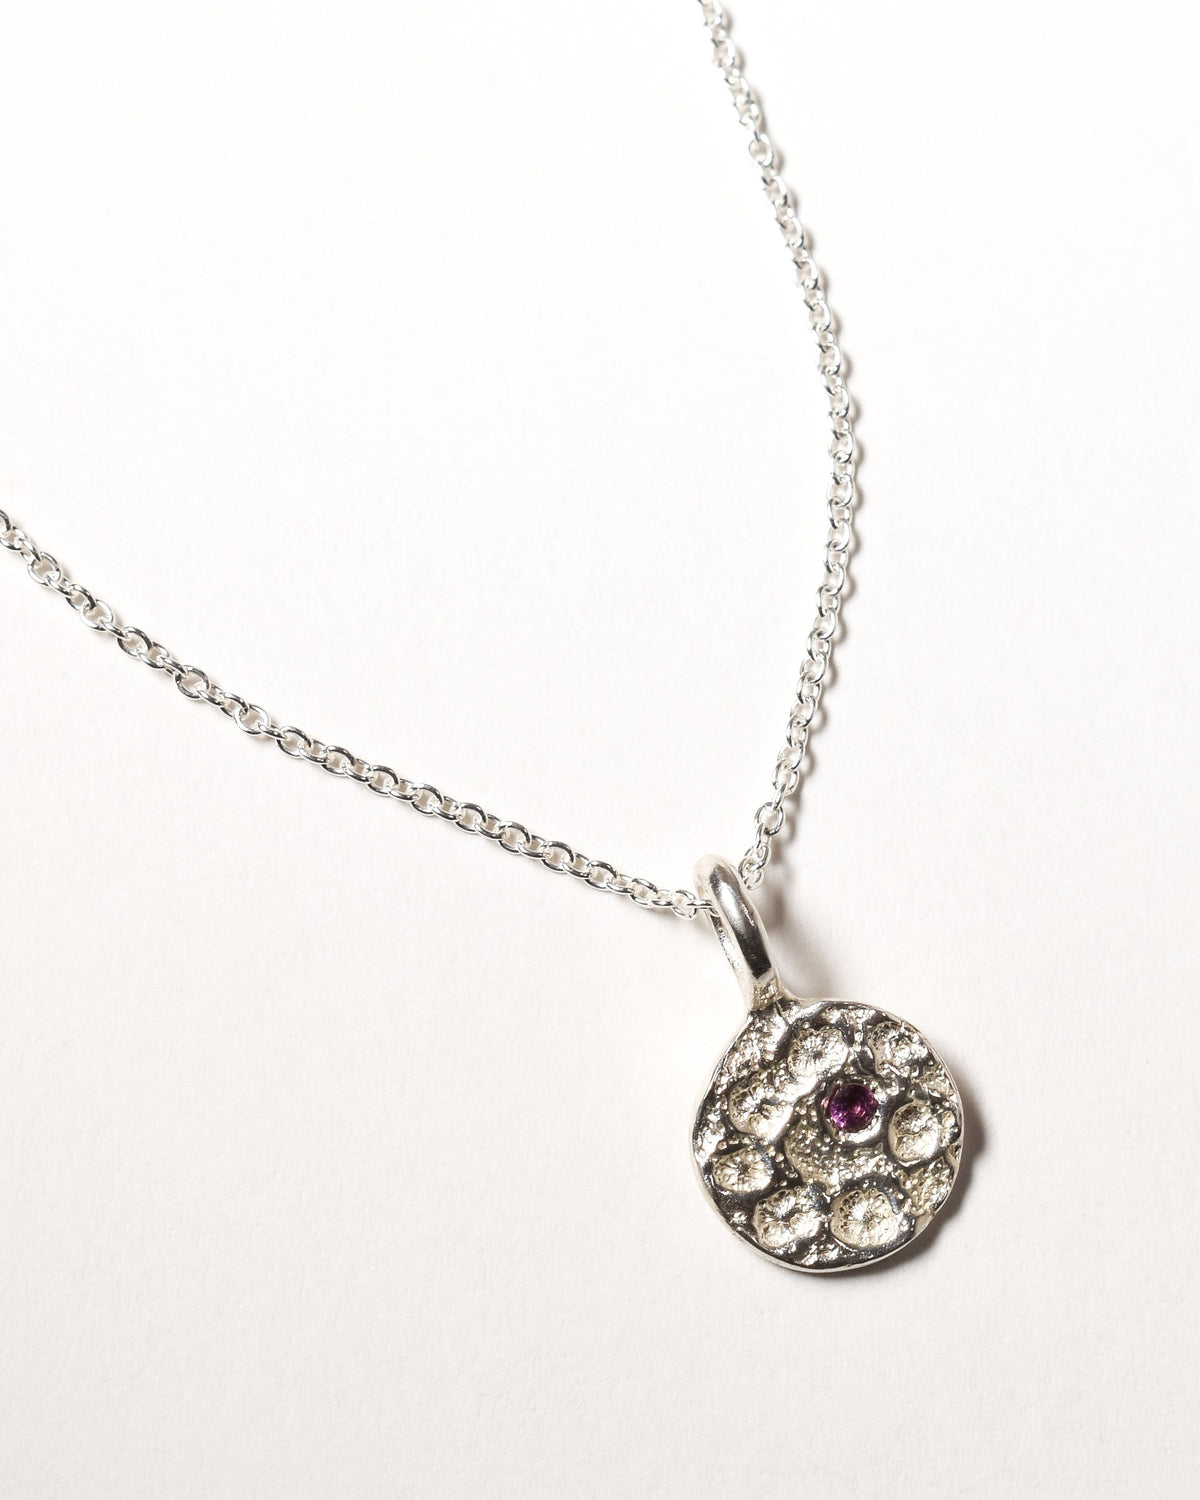 Garnet Birthstone Necklace - January - Sterling Silver